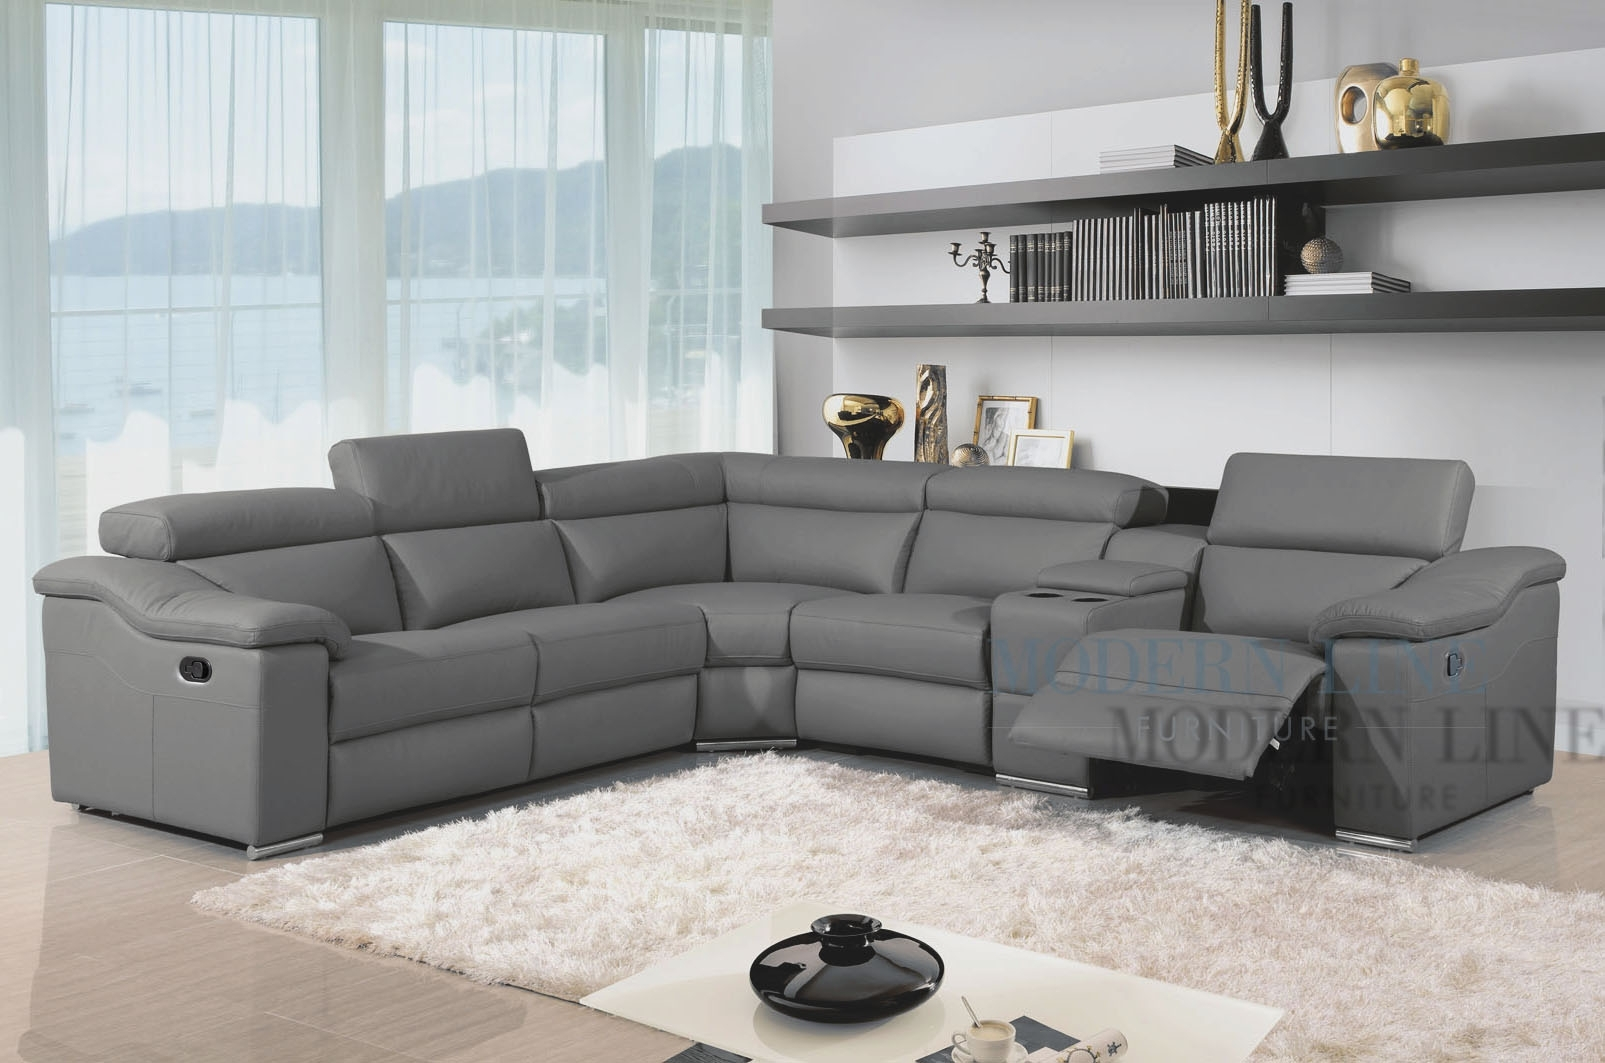 Sofa : Glamorous Modern Leather Sectional Sofa With Recliners Intended For Sectional Sofas With Recliners (View 15 of 15)